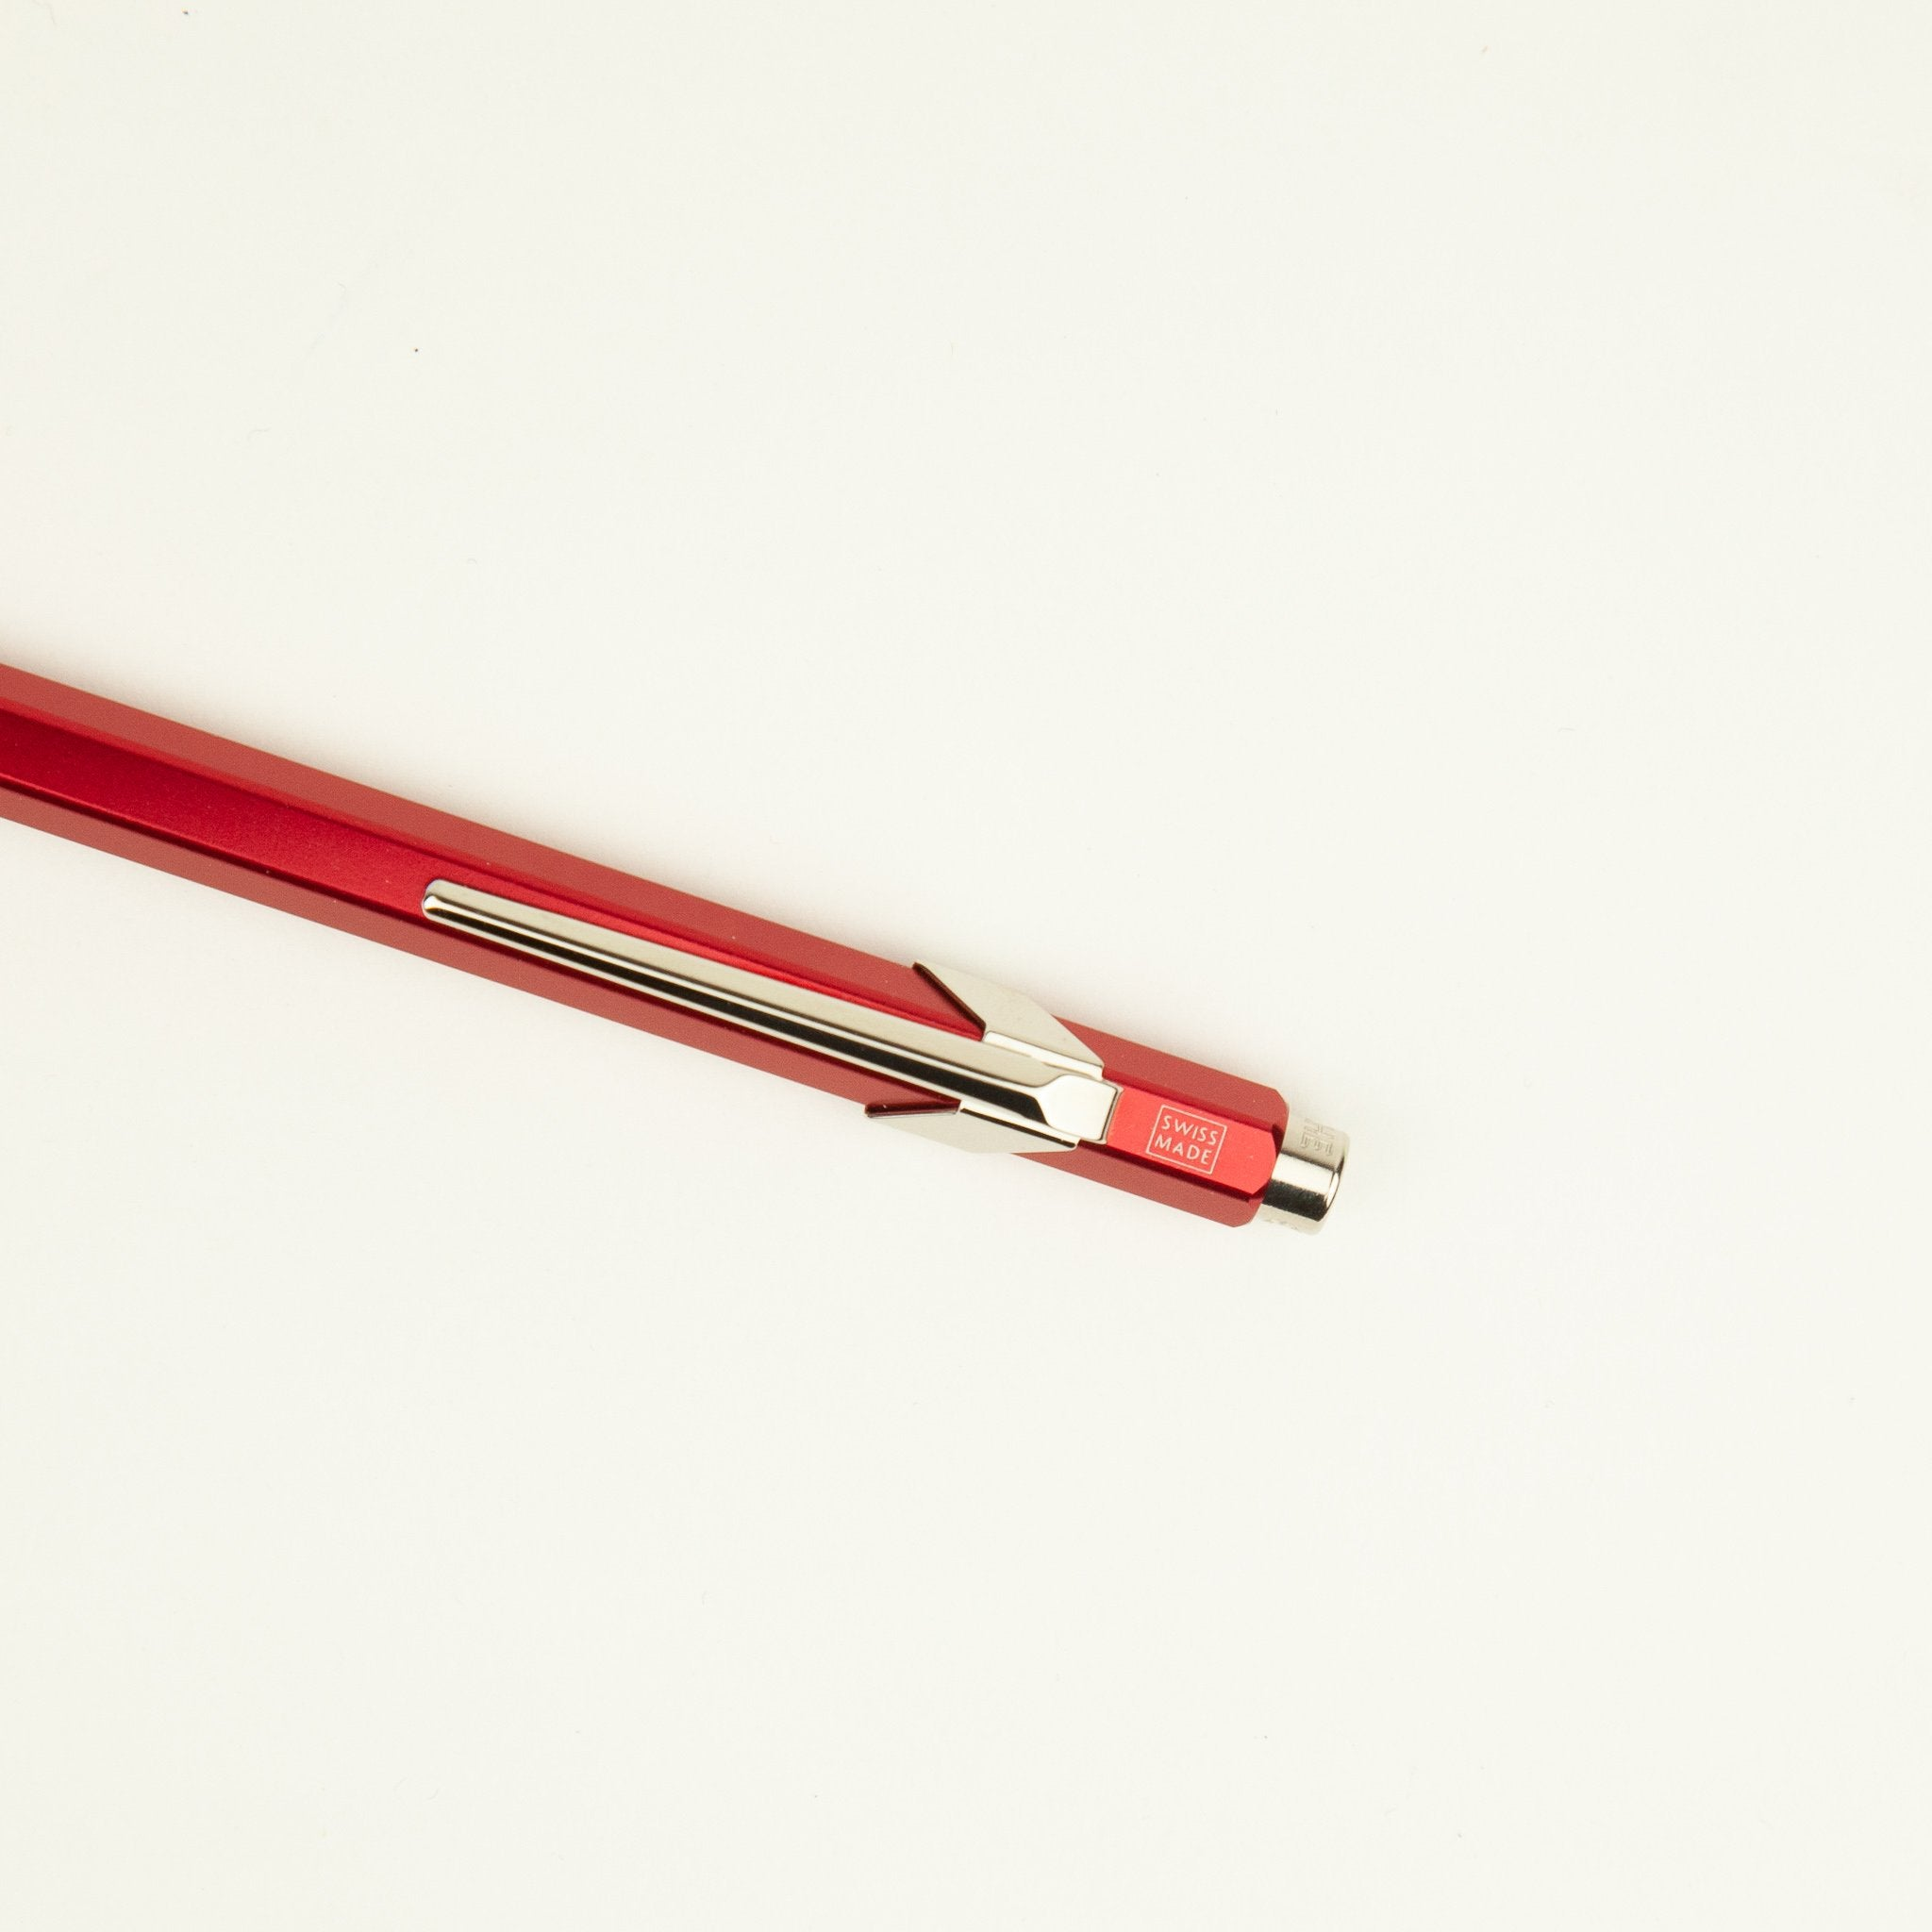 Classic Line 849 Ballpoint - Metal-X / Red